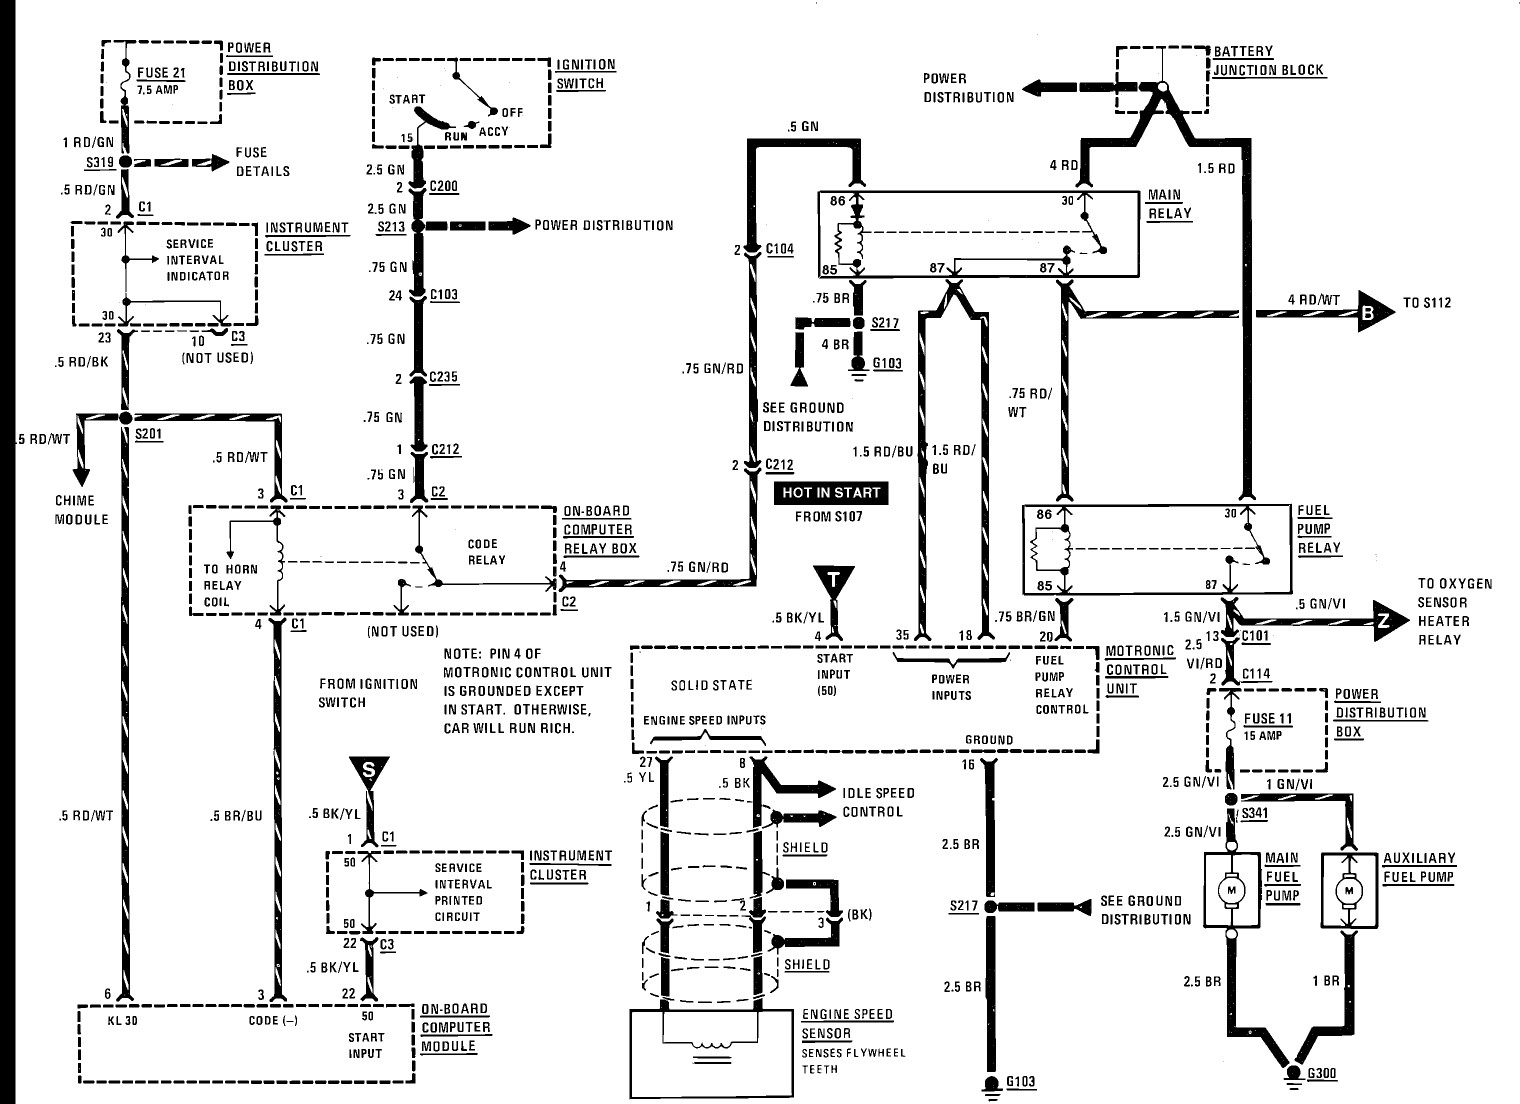 [TVPR_3874]  DIAGRAM> Srs Wiring Diagram 05 Bmw Z4 FULL Version HD Quality Bmw Z4 -  AVENNDIAGRAM.HRNT.IT | 2004 Bmw Z4 Wiring Diagram |  | Diagram Database